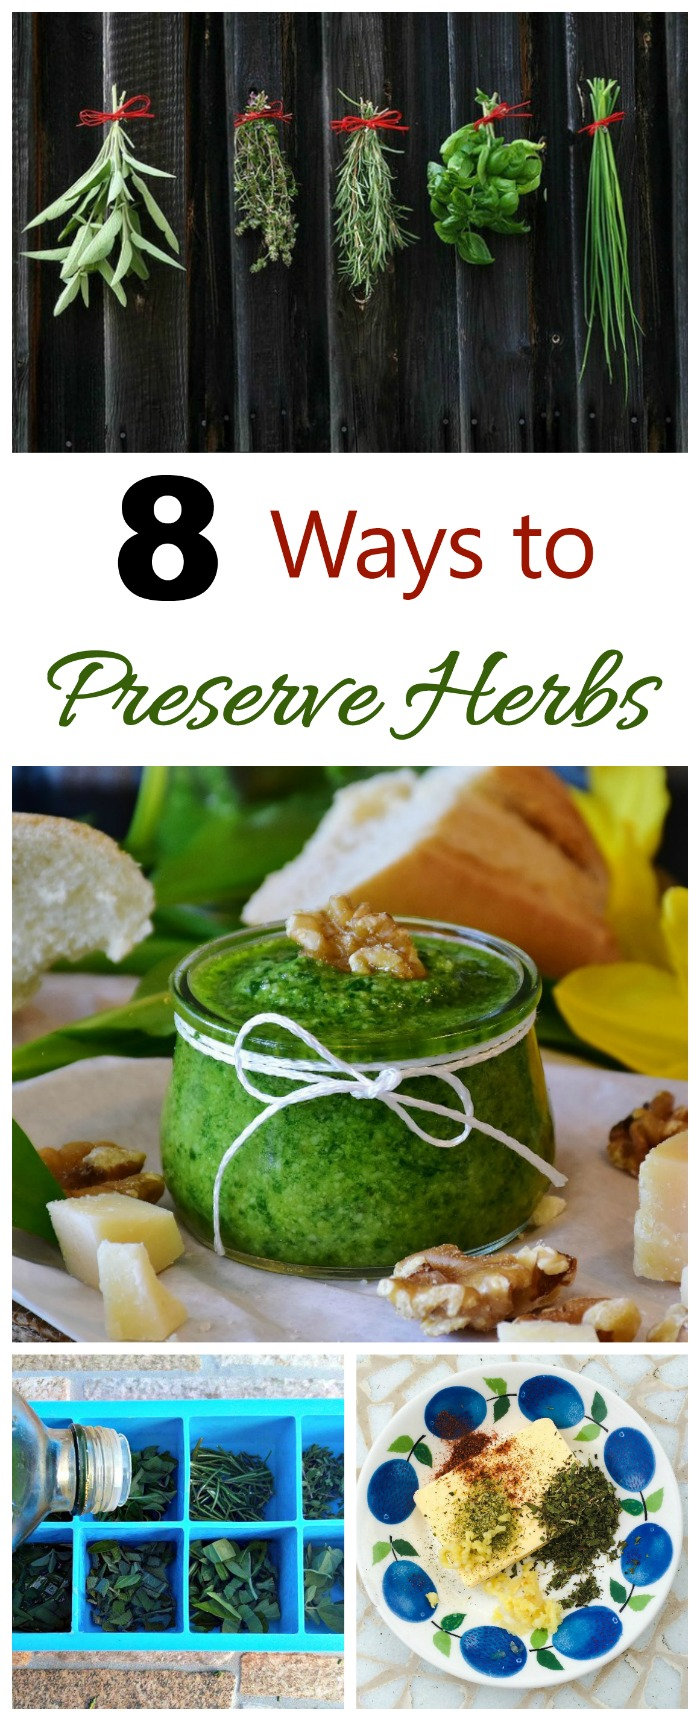 These 8 ways for preserving herbs will keep the flavors going long after the growing season is over.